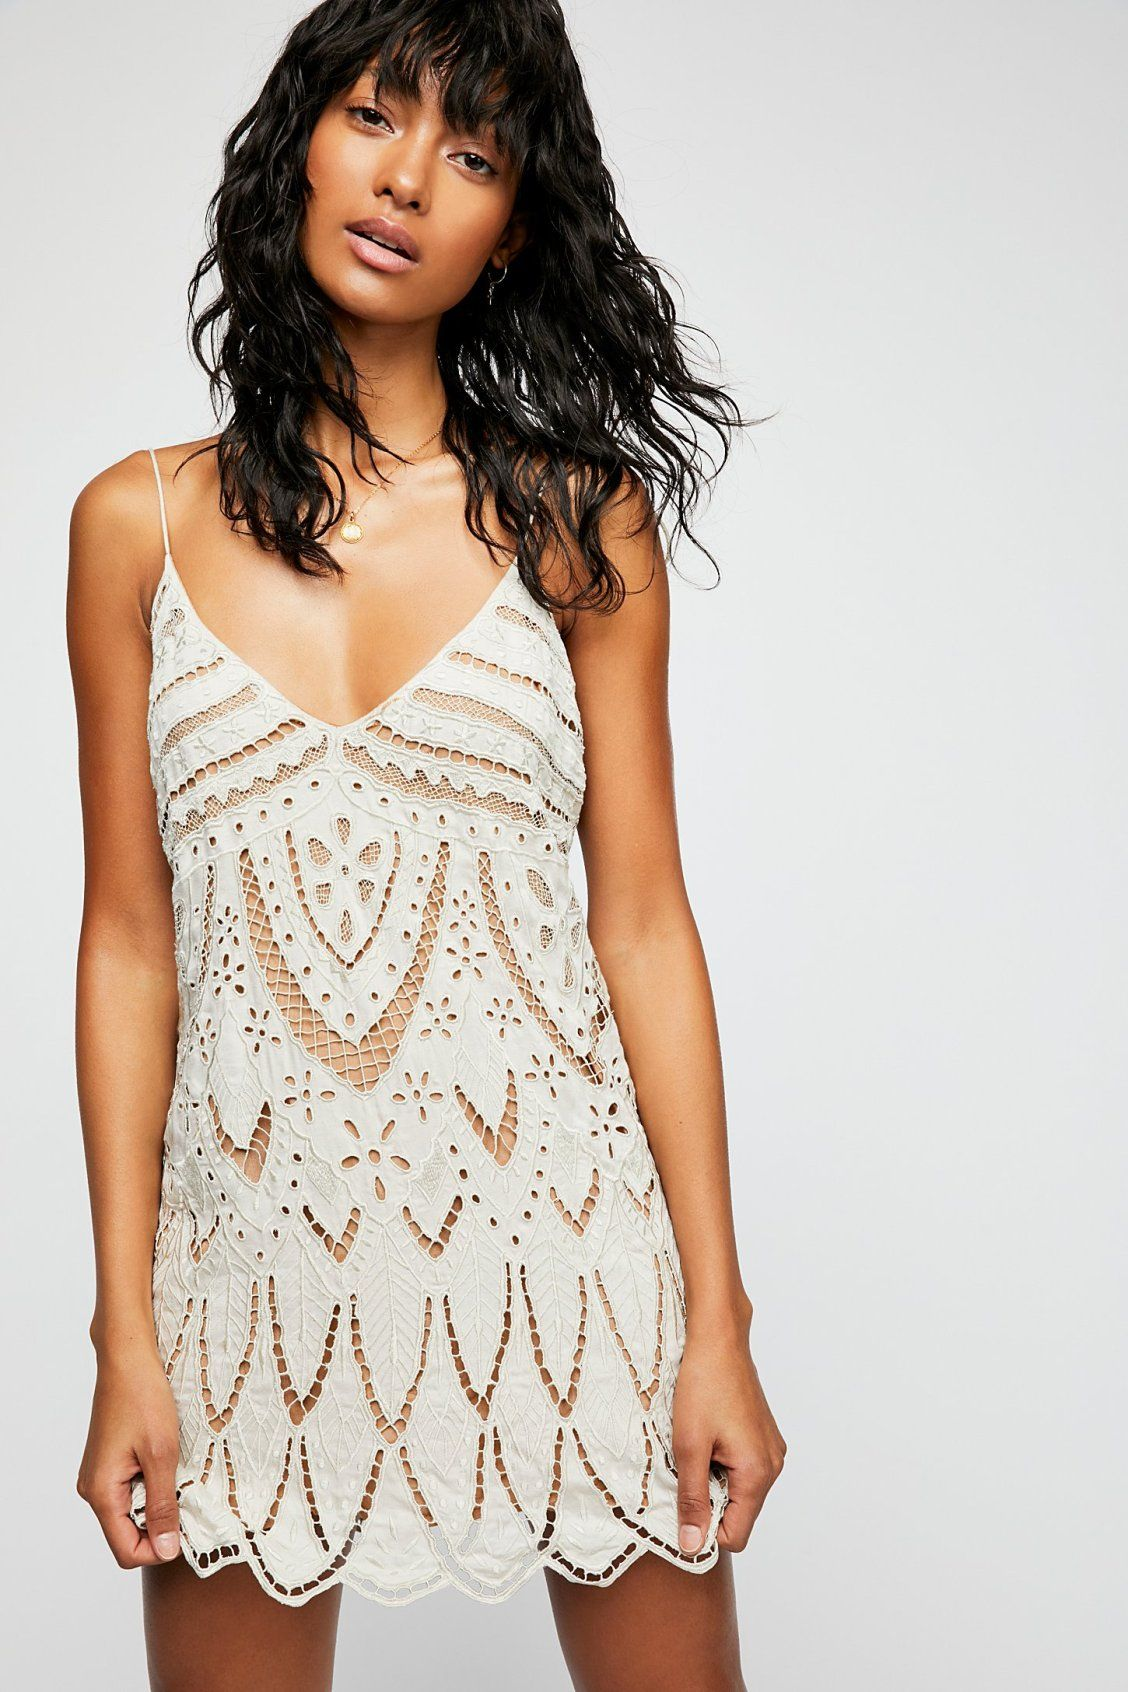 ff973be1647 PYT Mini Dress | Dresses | Dresses, Fashion, Free people wedding dress